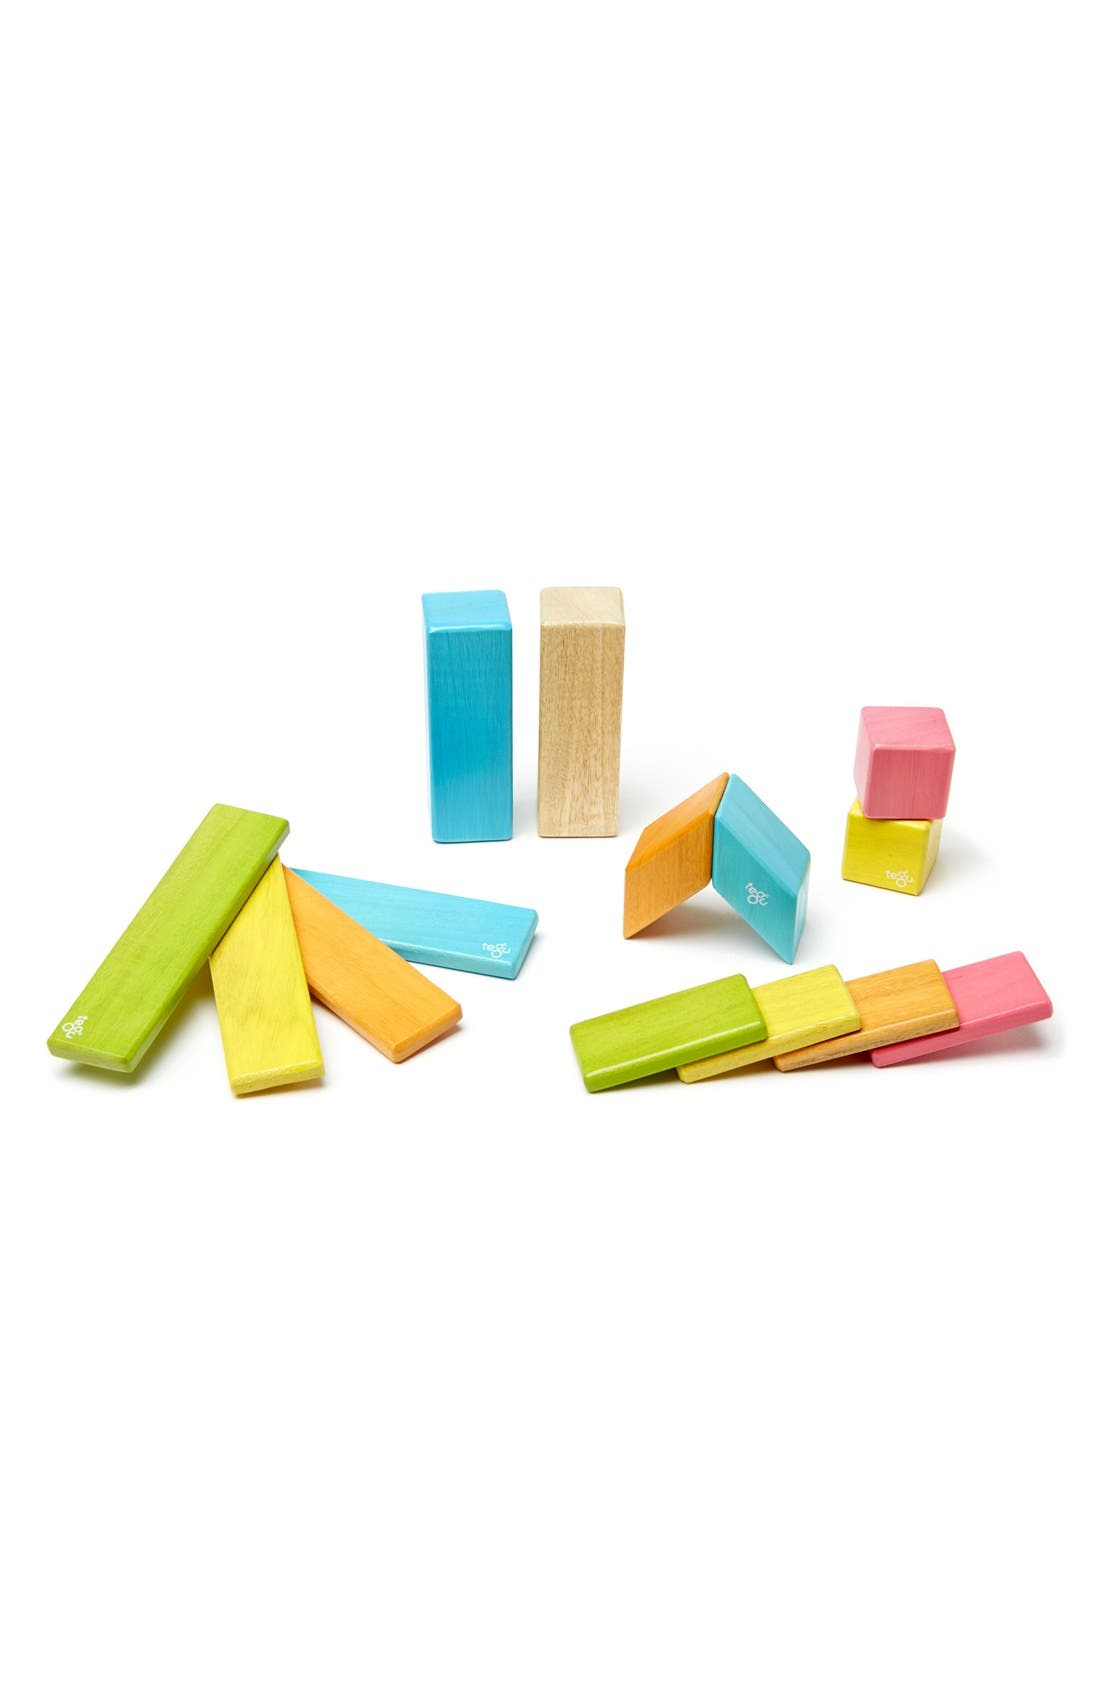 Alternate Image 2  - Tegu 'Classics - Blues' Magnetic Wooden Blocks Play Set